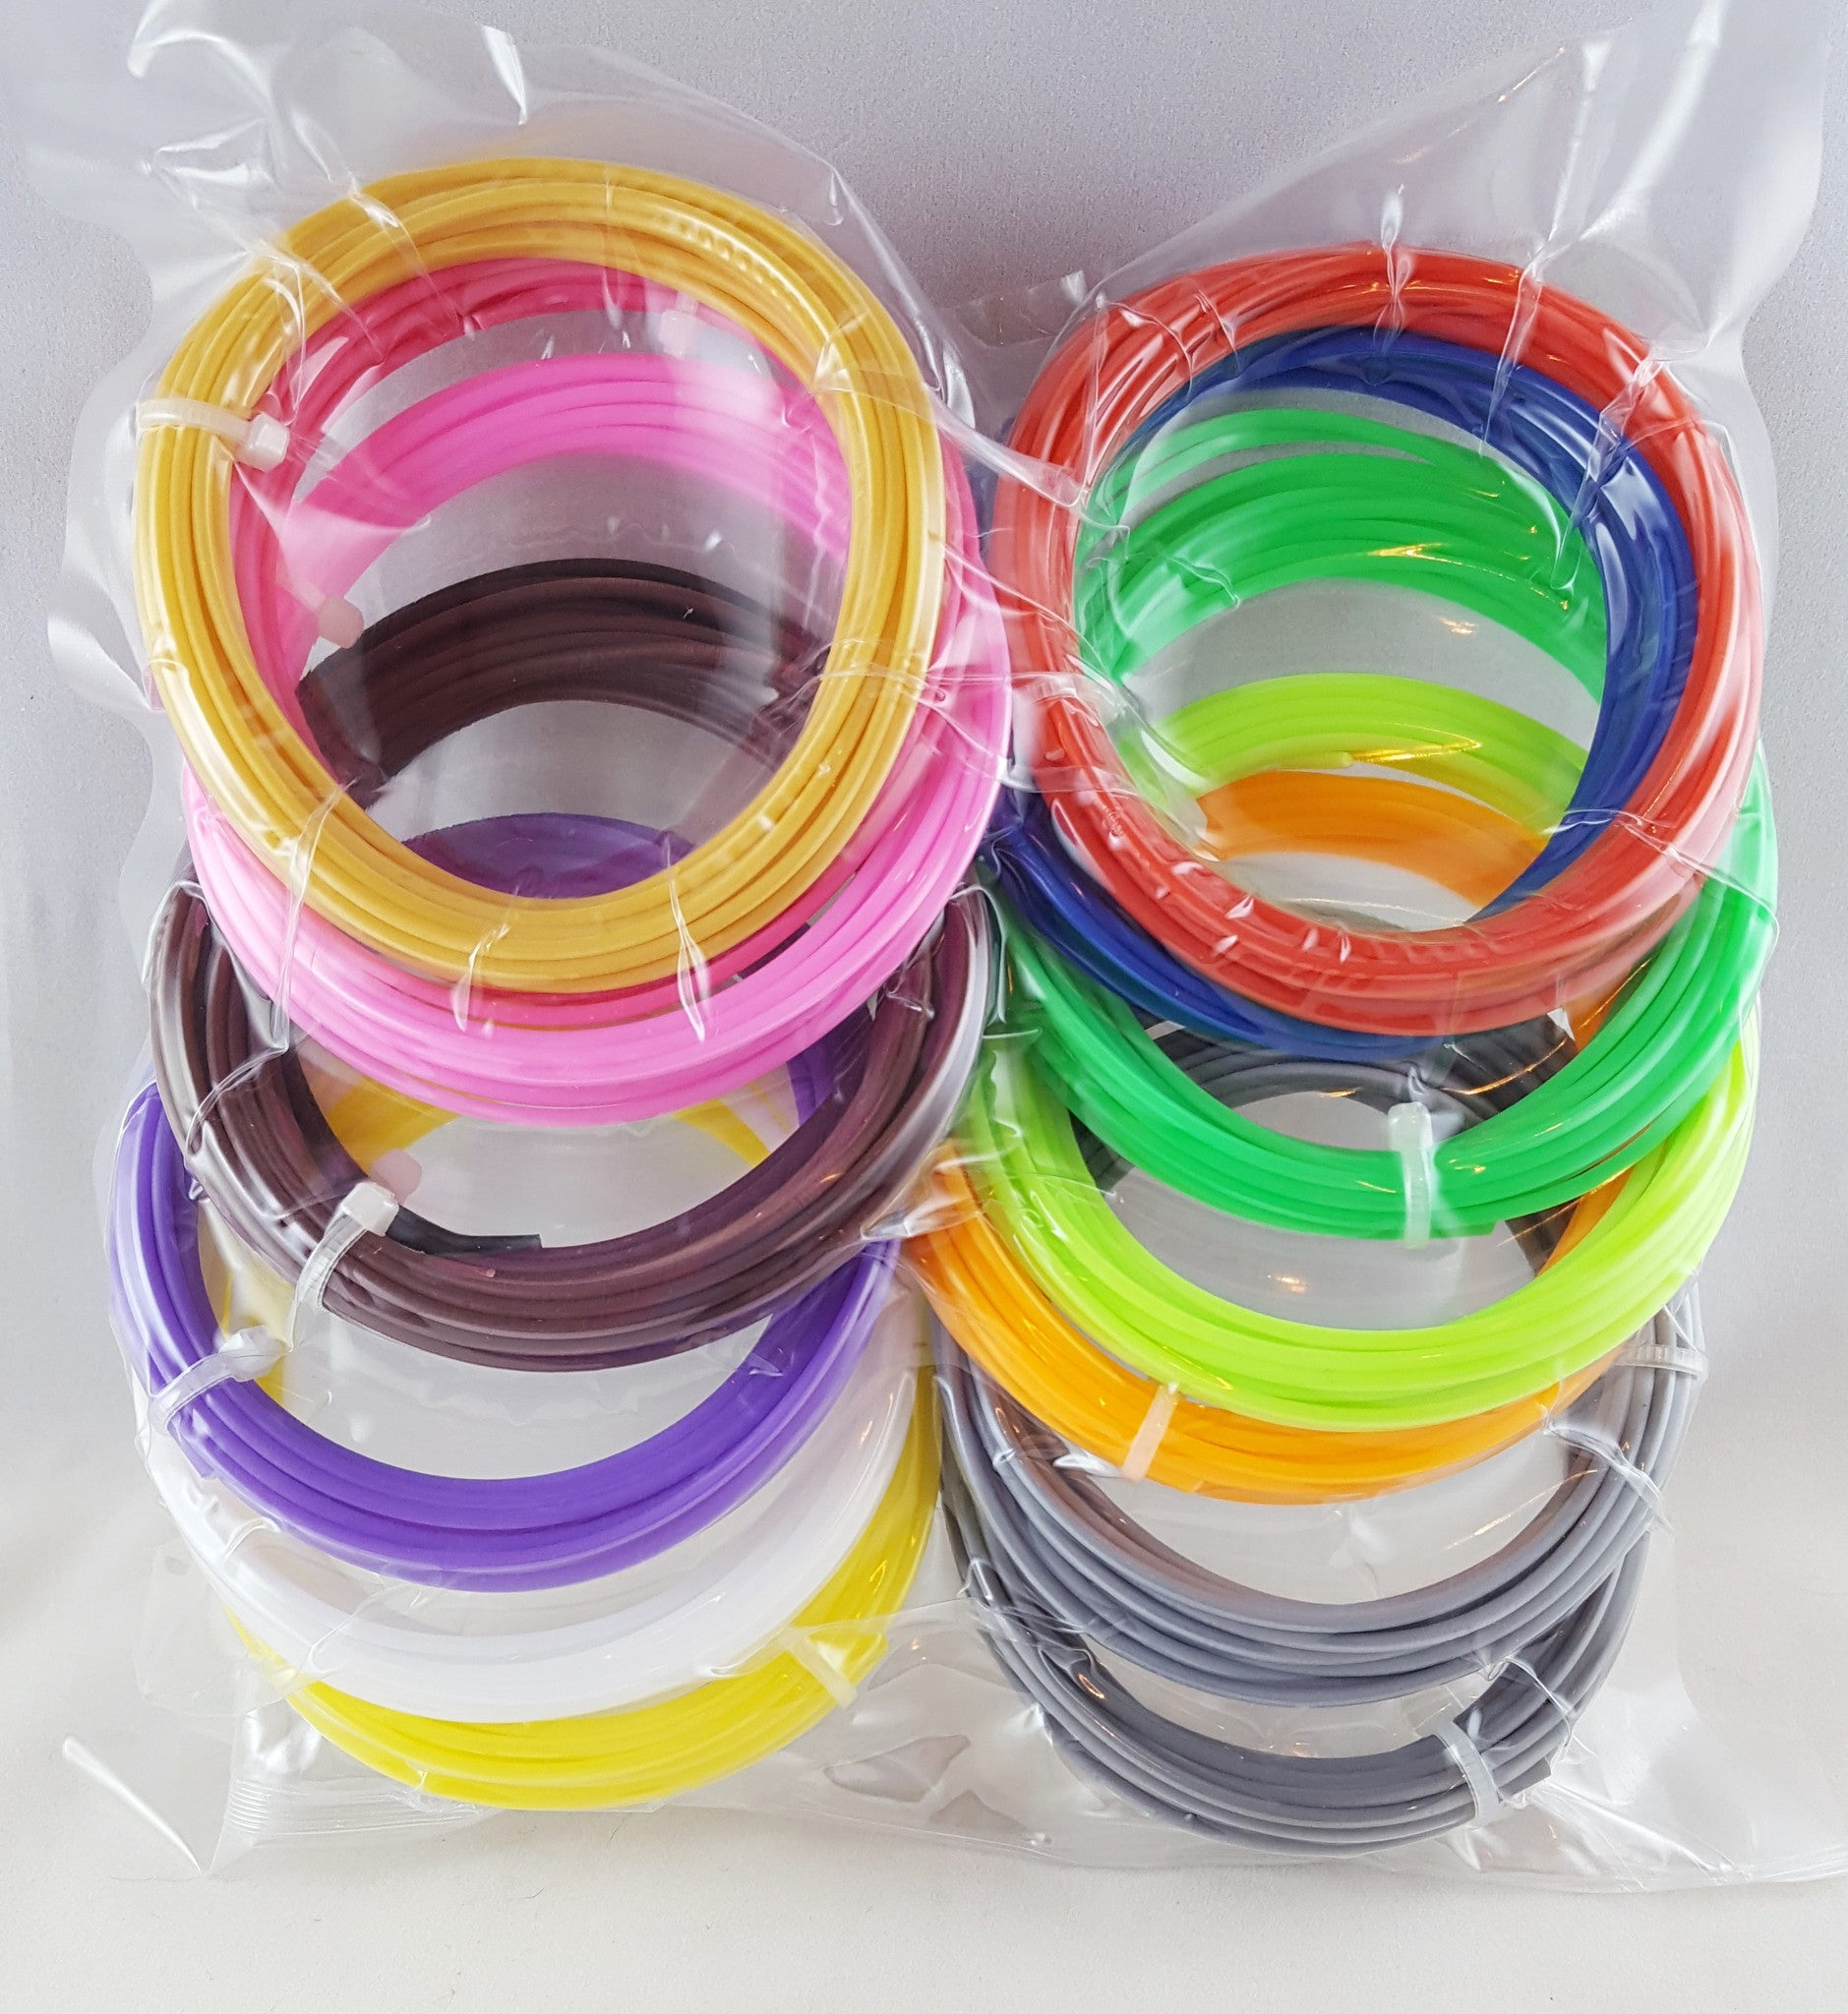 PLA 1.75mm Filament Refill Strands 3D Printer Pen 15 colors ~10 ft per color